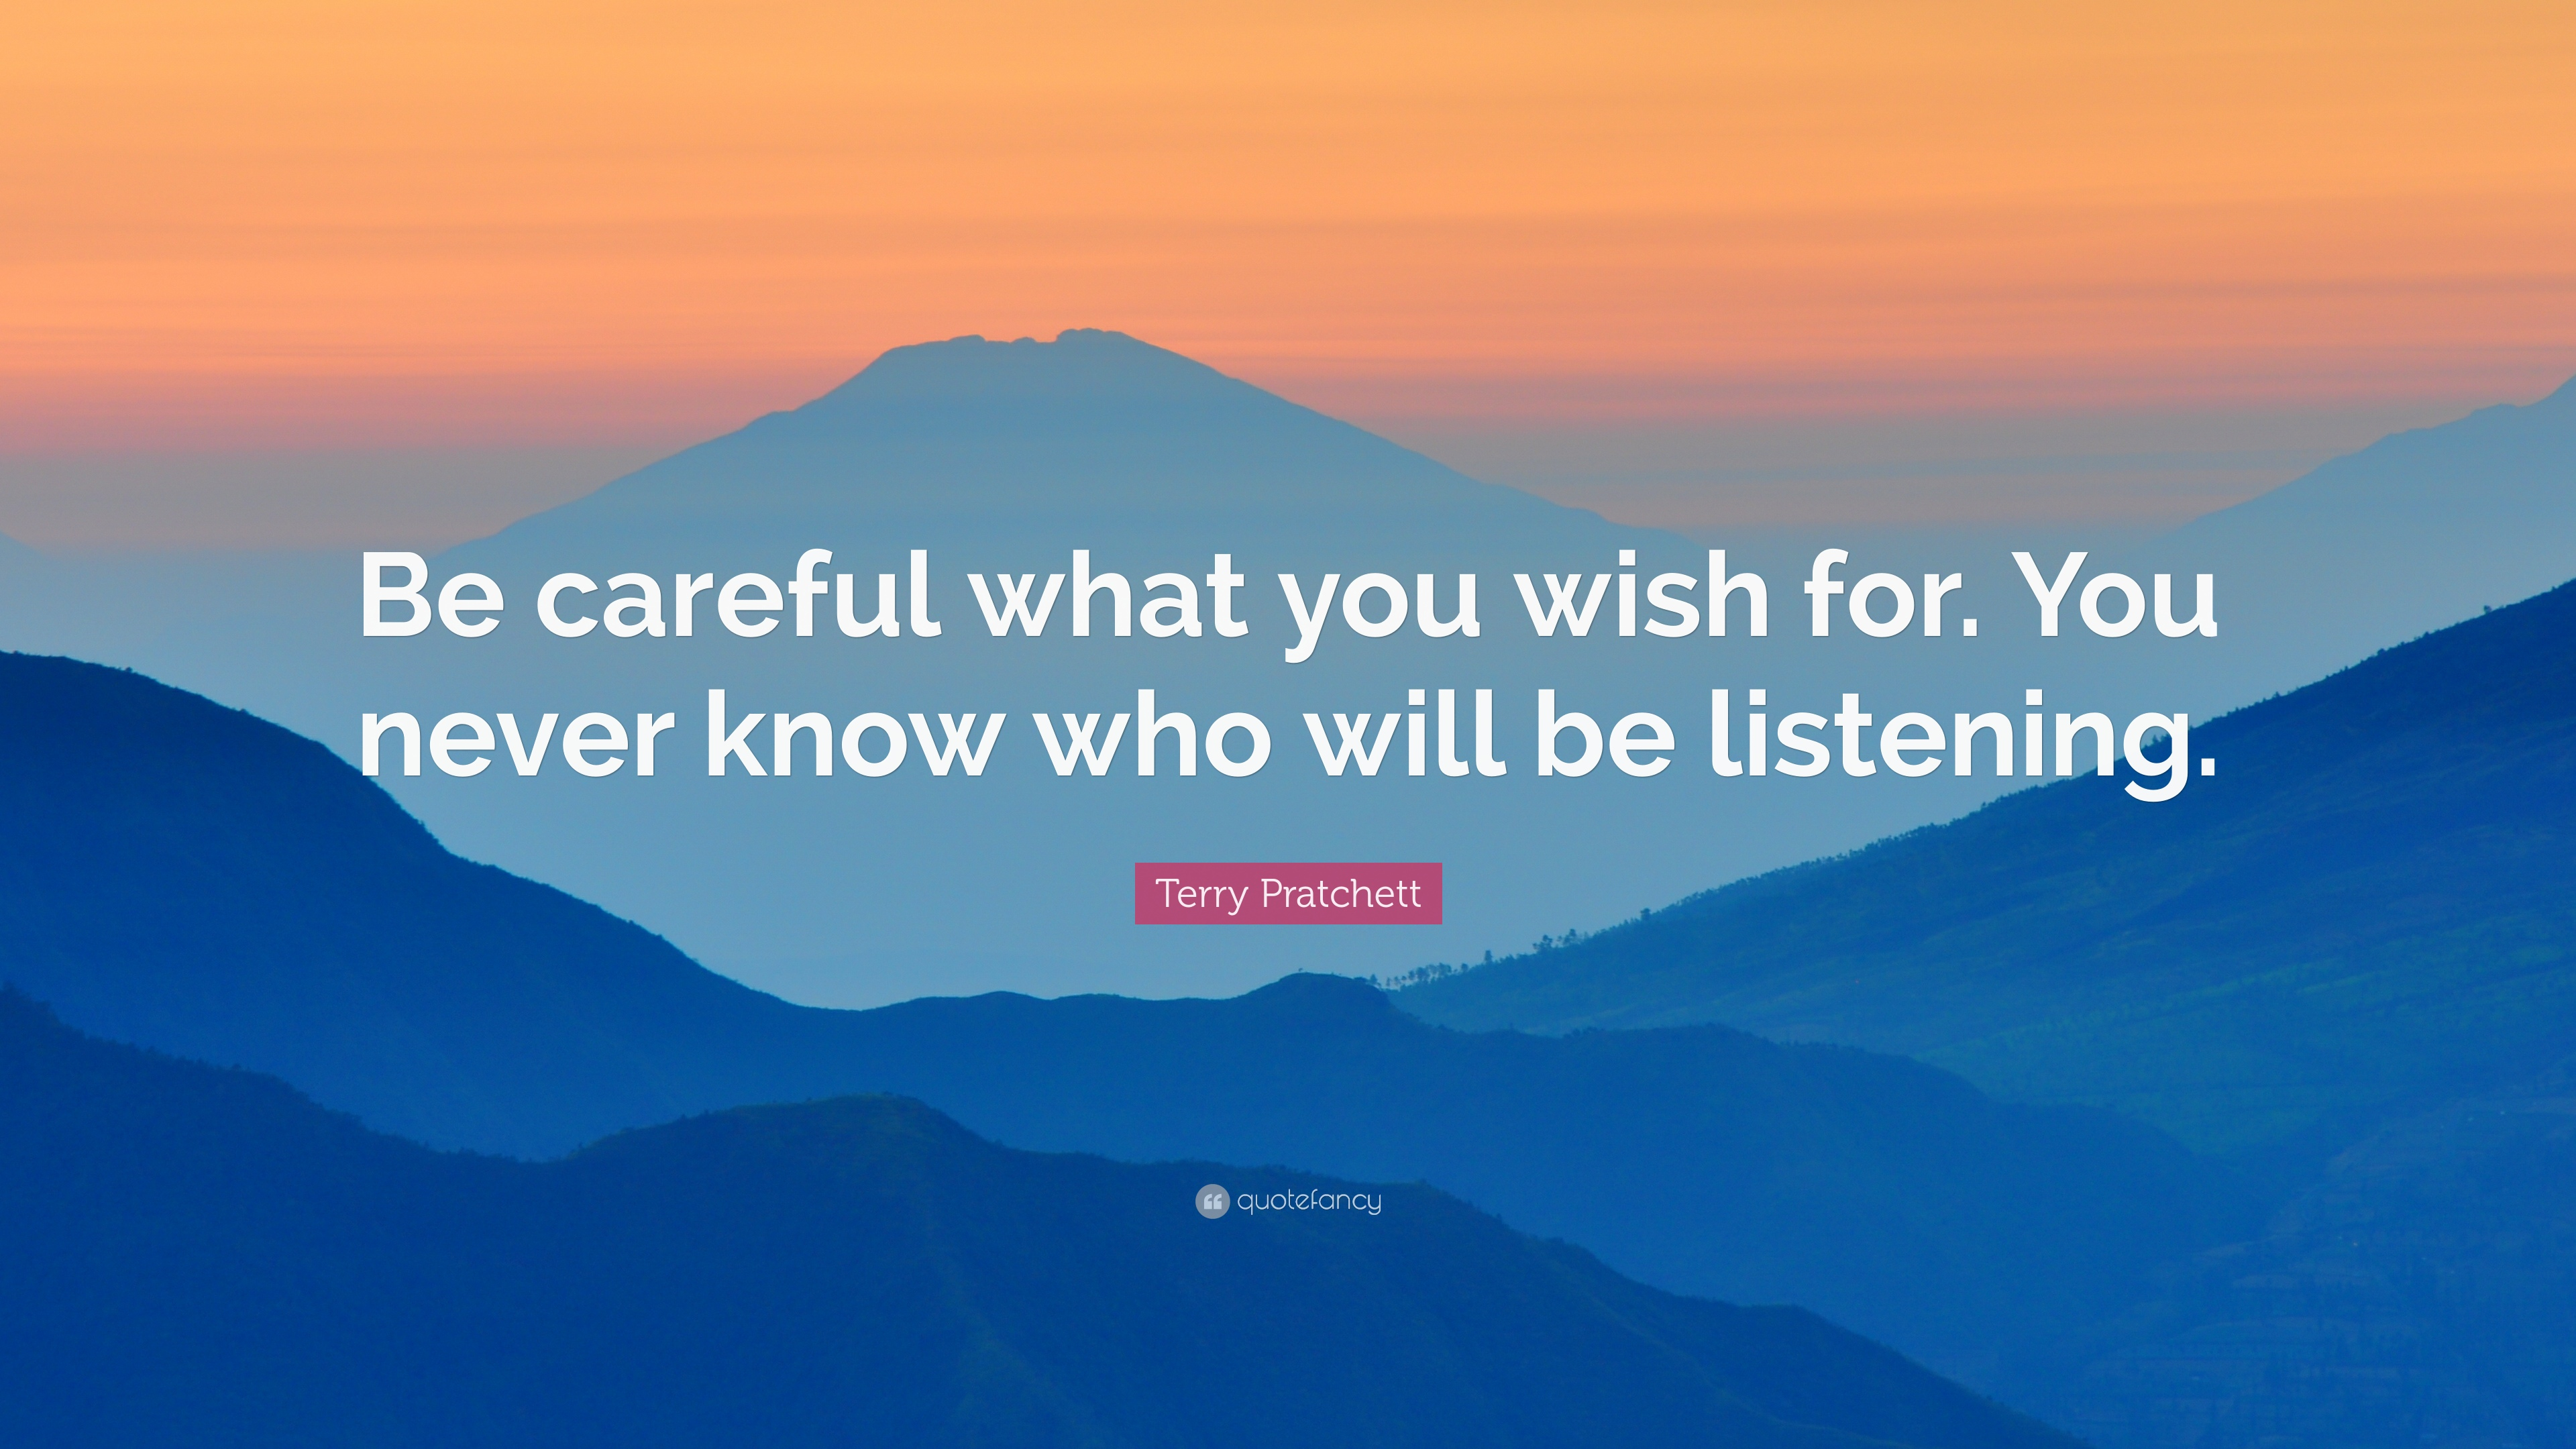 Terry Pratchett Quote Be Careful What You Wish For You Never Know